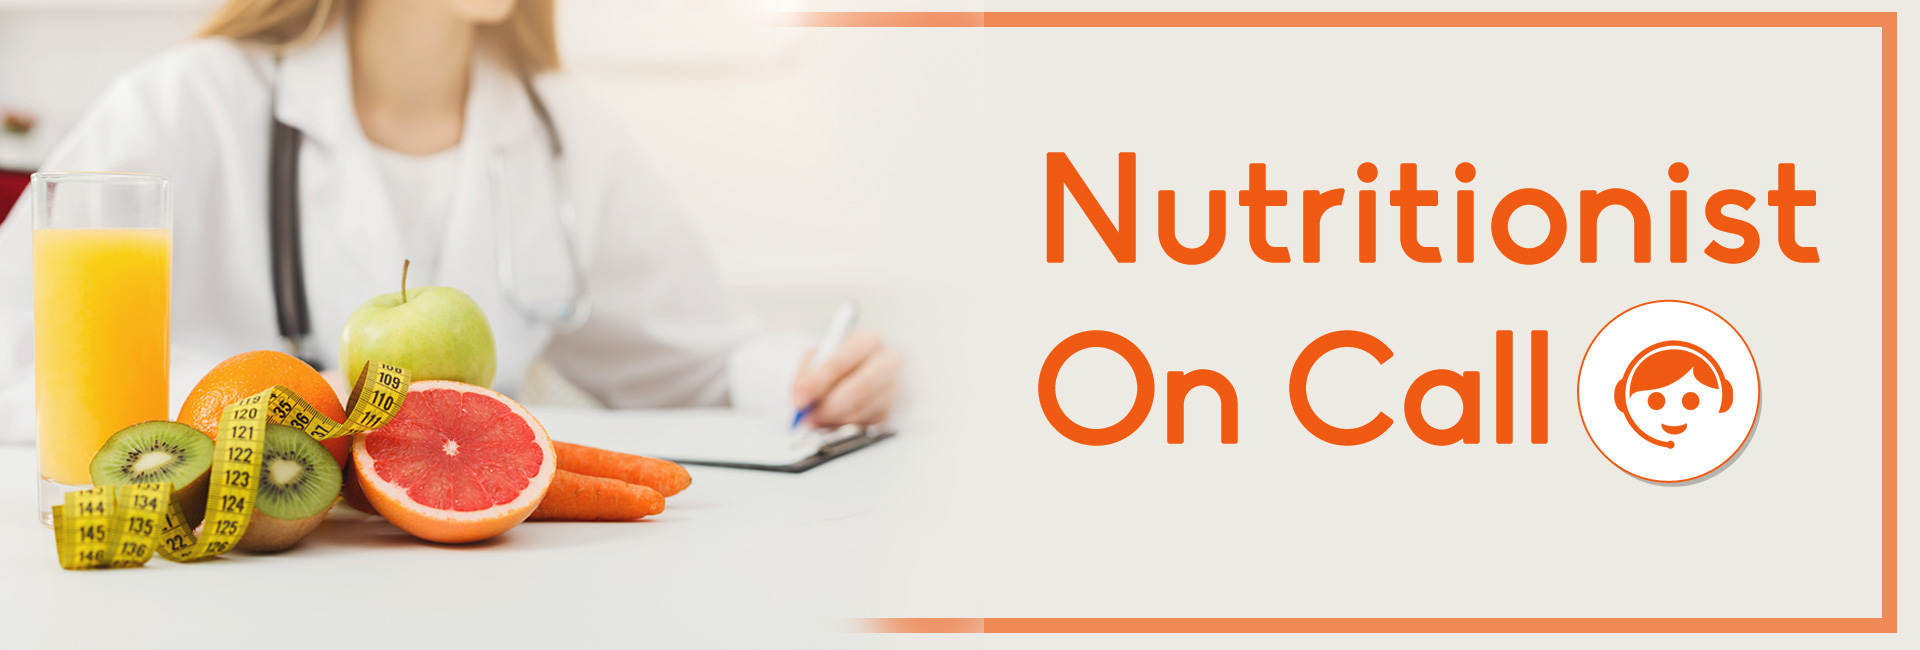 Nutritionist On Call In Abu Dhabi